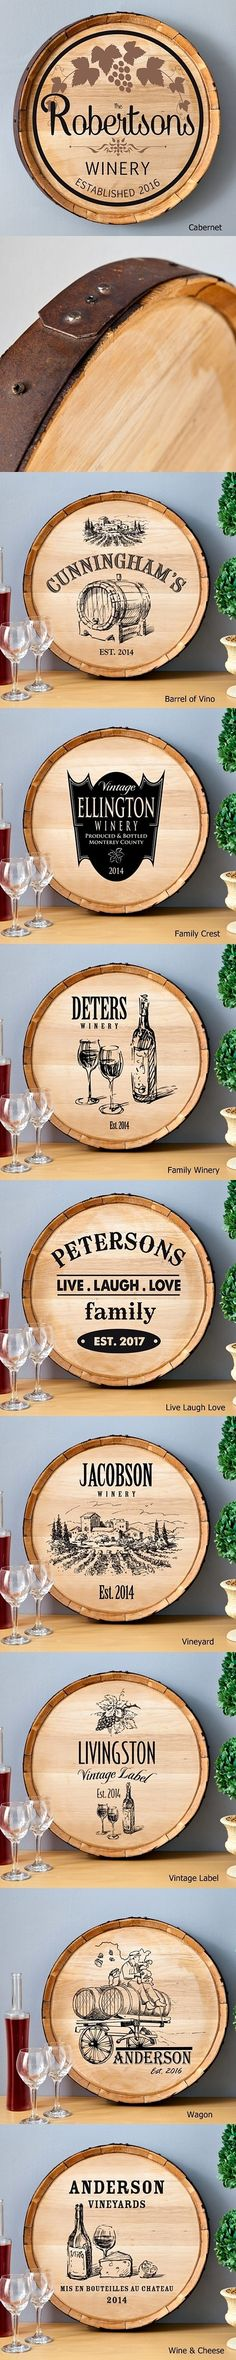 Personalized Wooden Wine Barrel Signs (9 Designs) | Personalized Gifts and Party Favors